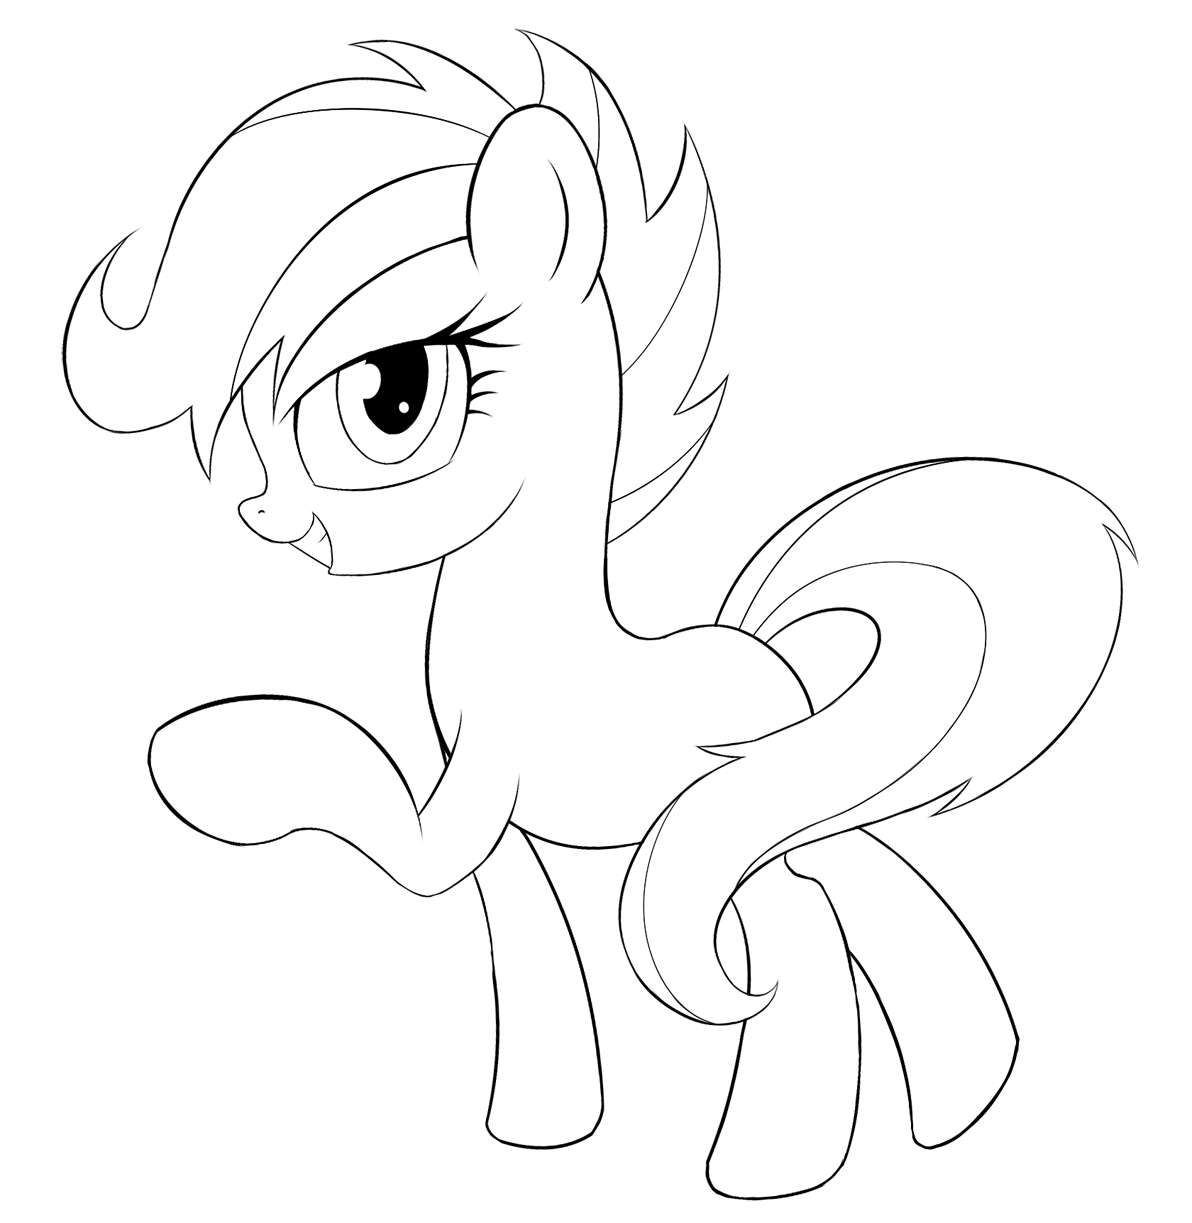 scootaloo coloring page baby scootaloo my little pony coloring pages printable page coloring scootaloo